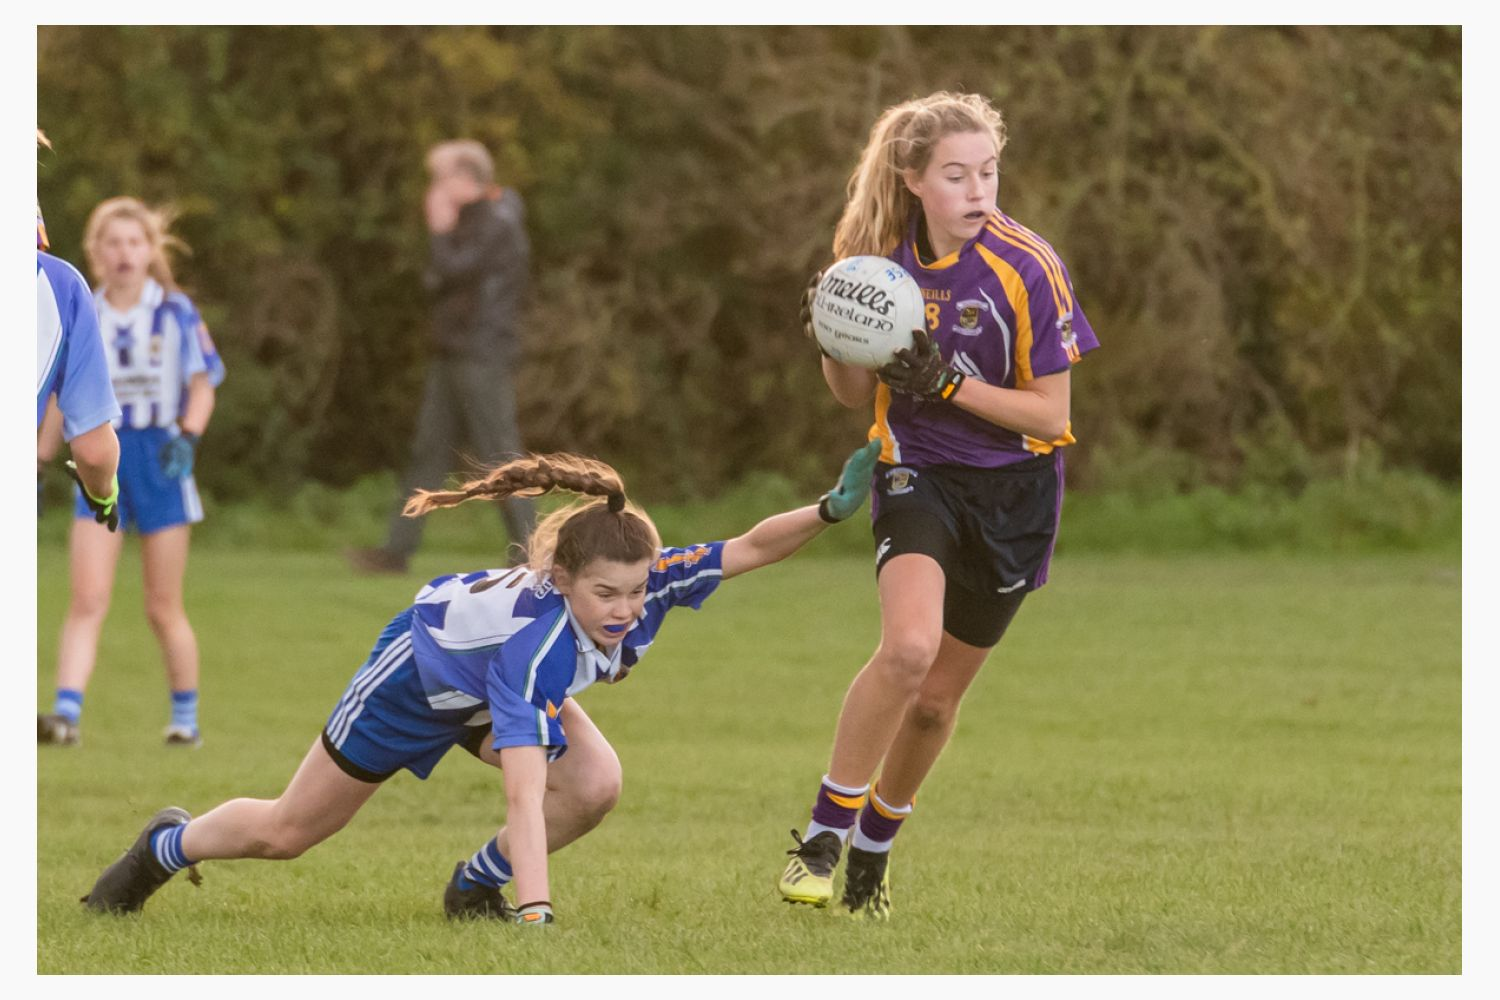 Kilmacud Crokes Under 13 Ladies Football Cup Final versus Ballyboden